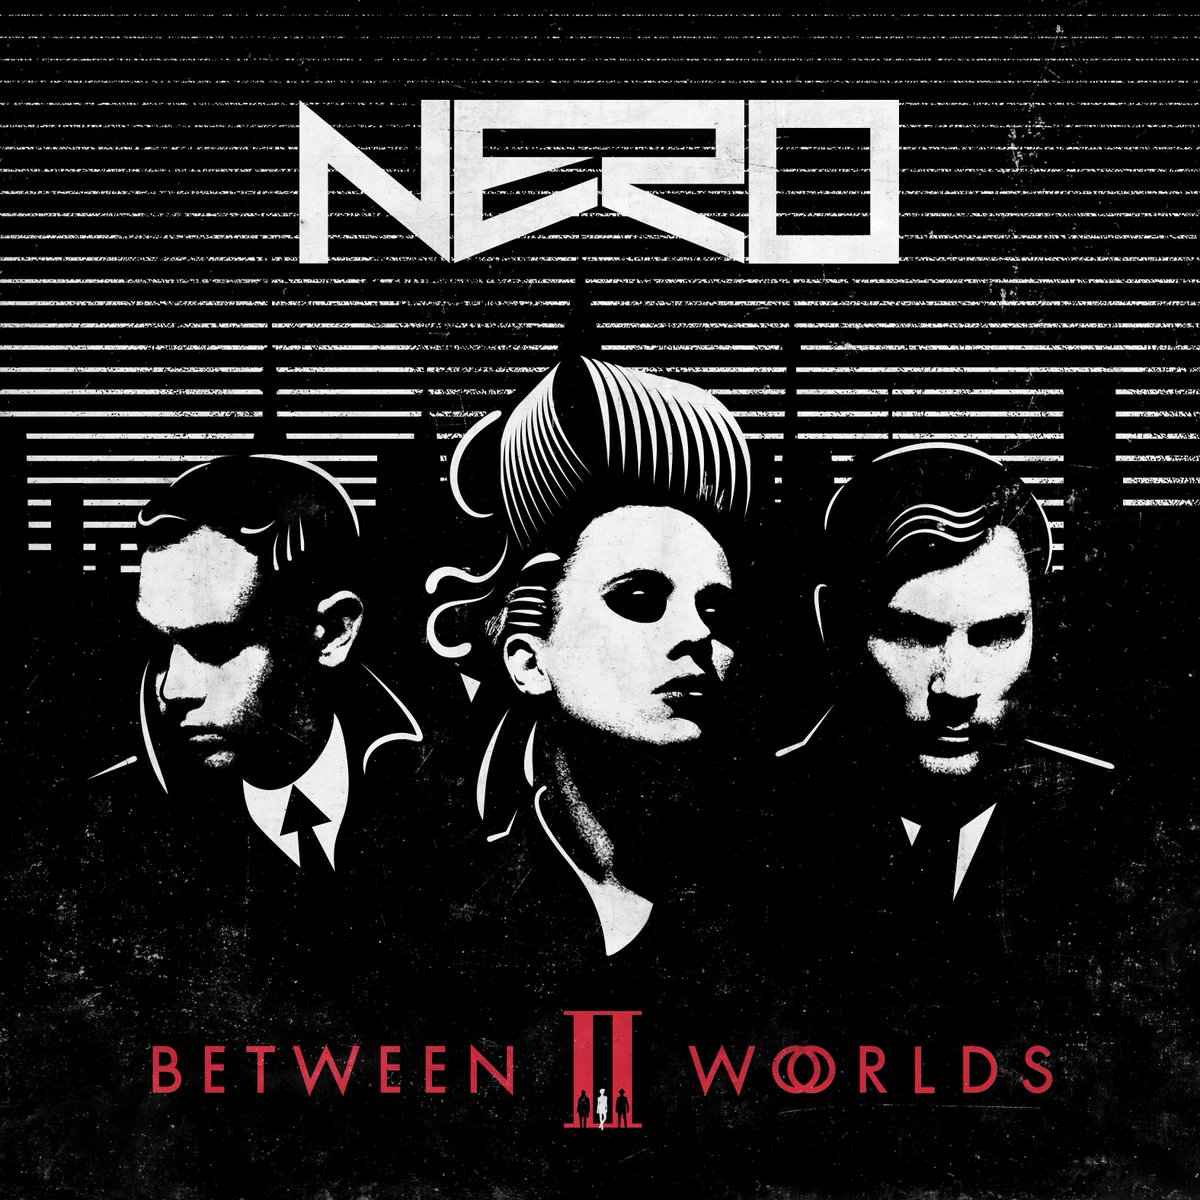 BETWEEN II WORLDS. THE ALBUM. OUT NOW: http://t.co/GEQiPQNucH http://t.co/bEtogzl8st